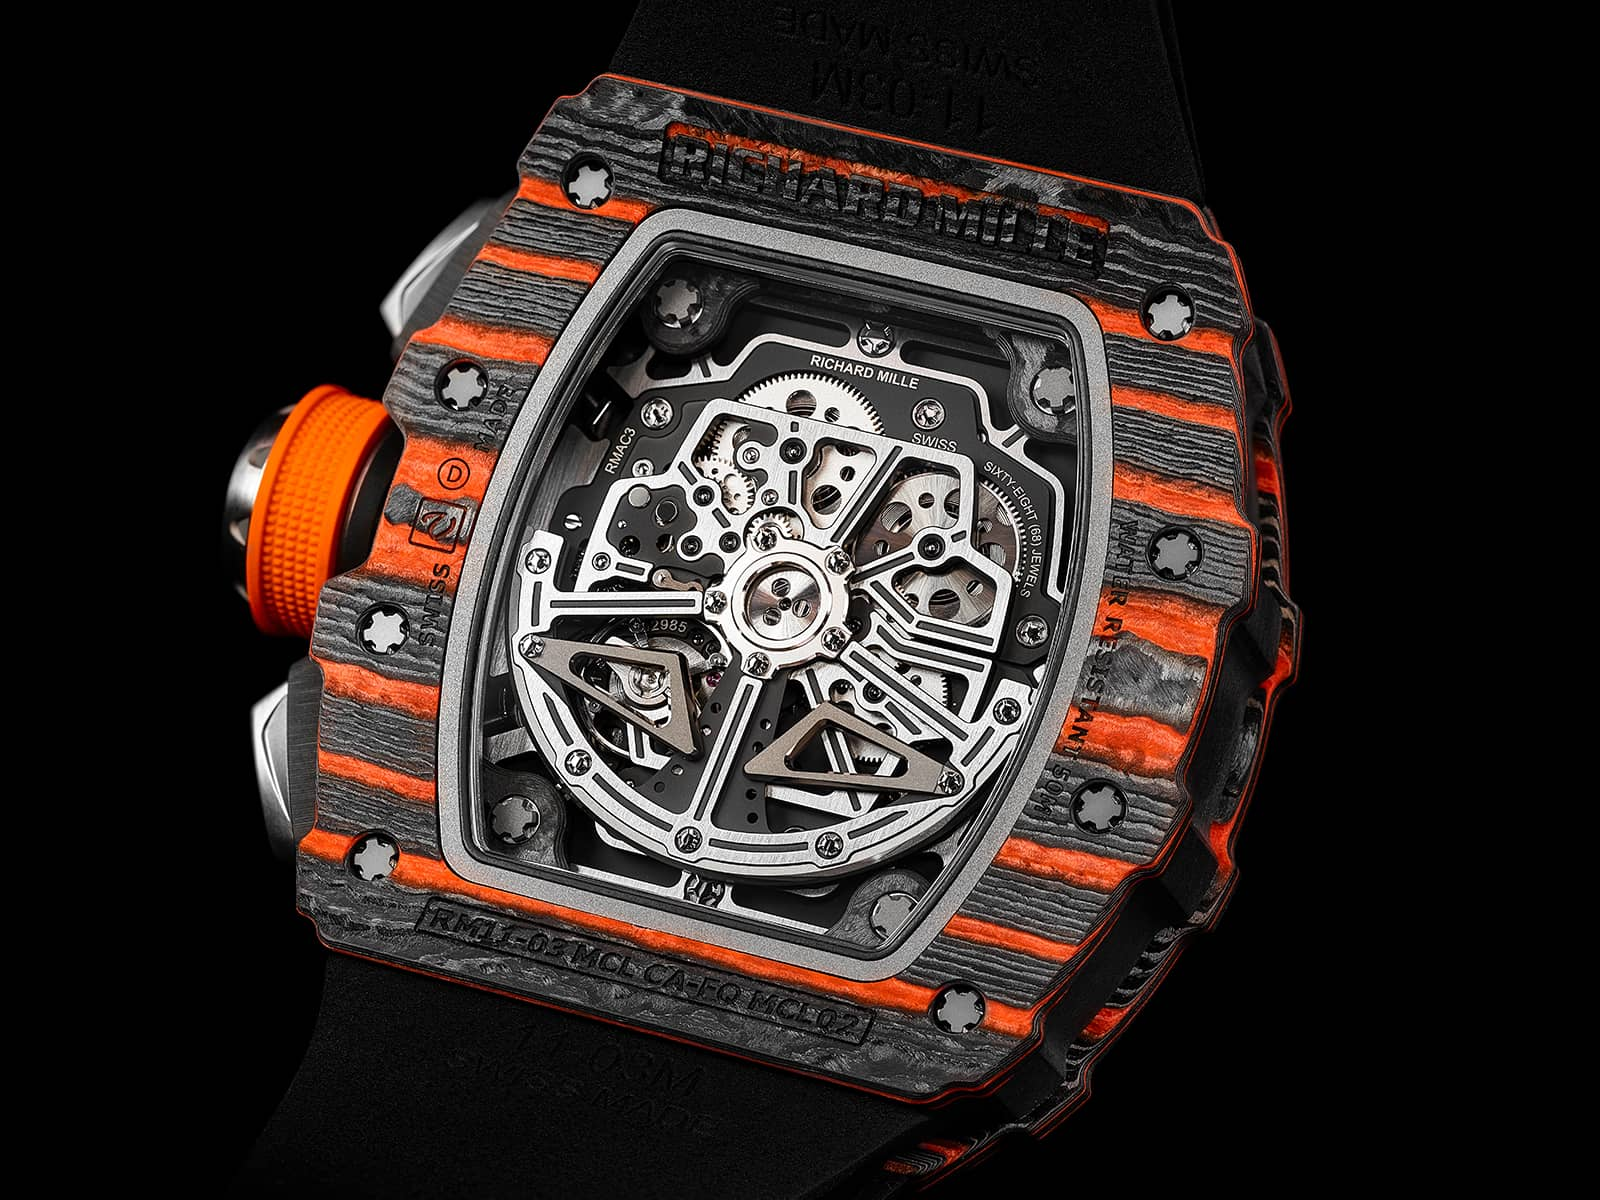 richard-mille-rm-11-03-mcLaren-automatic-flyback-chronograph-only-watch-3.jpg